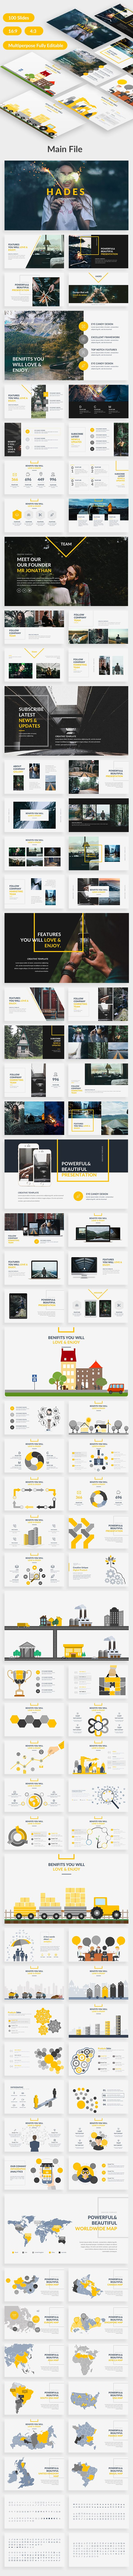 Hades Creative Powerpoint Template — Powerpoint PPT #maps #portofolio • Download ➝ https://graphicriver.net/item/hades-creative-powerpoint-template/20359395?ref=pxcr